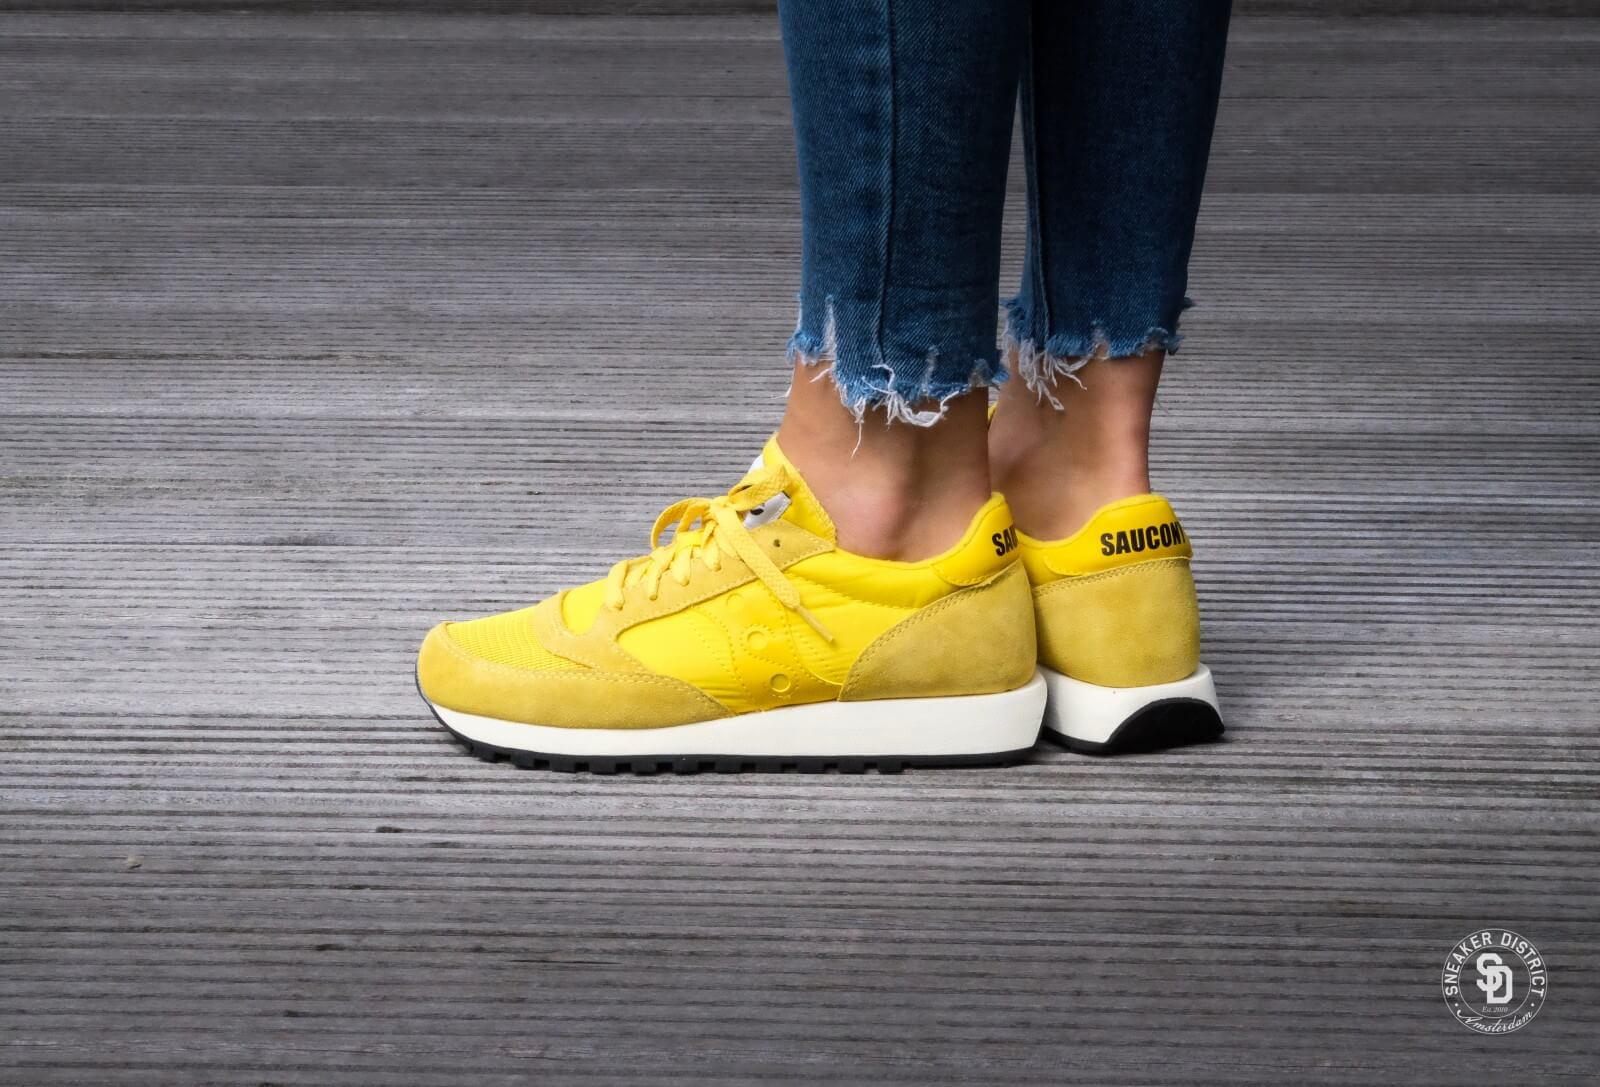 sale online on feet shots of release info on saucony jazz vintage yellow 50 off 65% - www.comprehensiveworklife.com